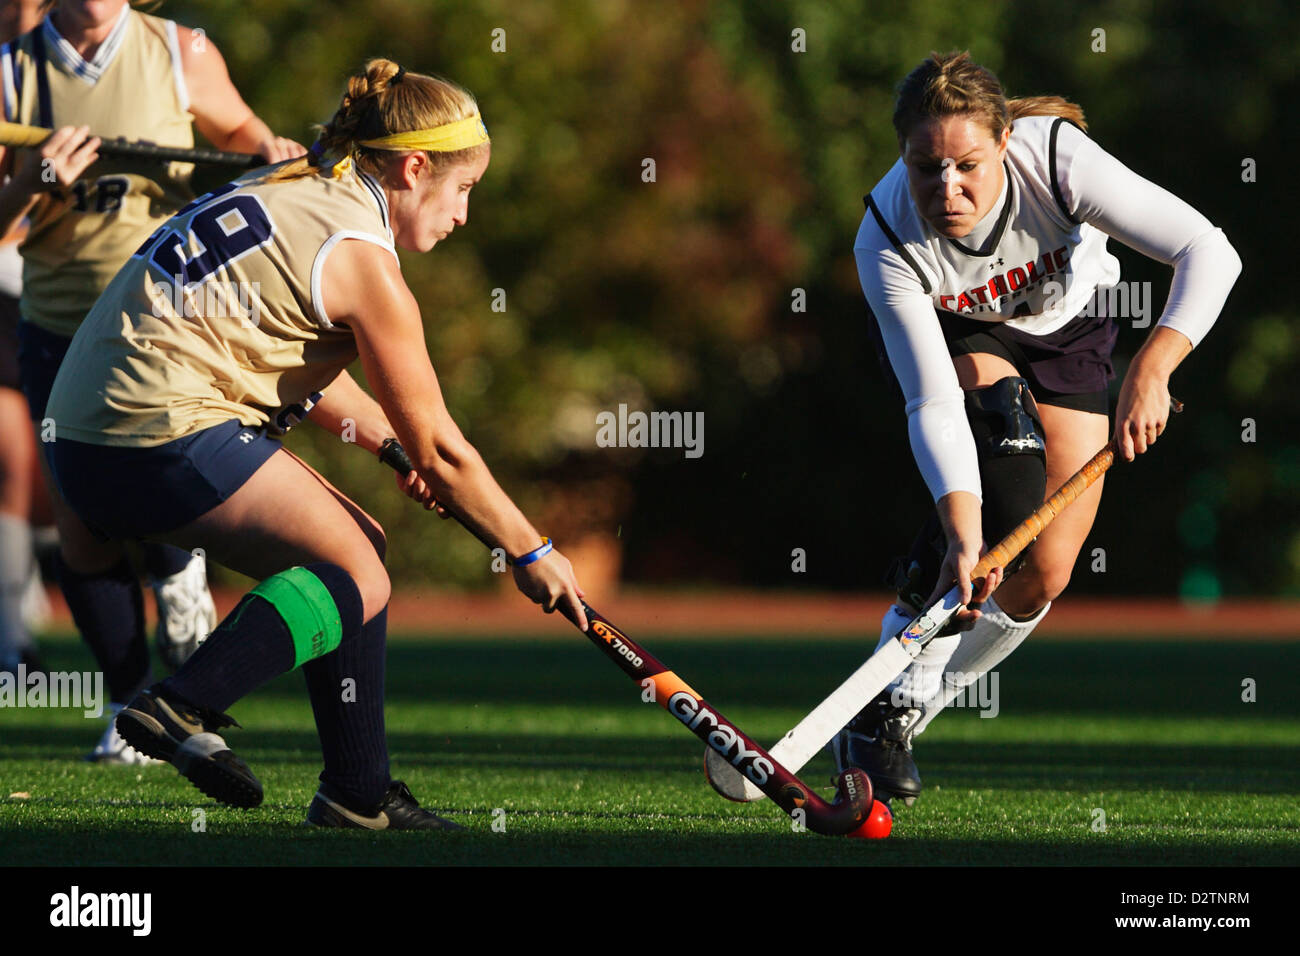 A Catholic University player (R) and Juniata College player (L) vie for the ball during a field hockey game. - Stock Image